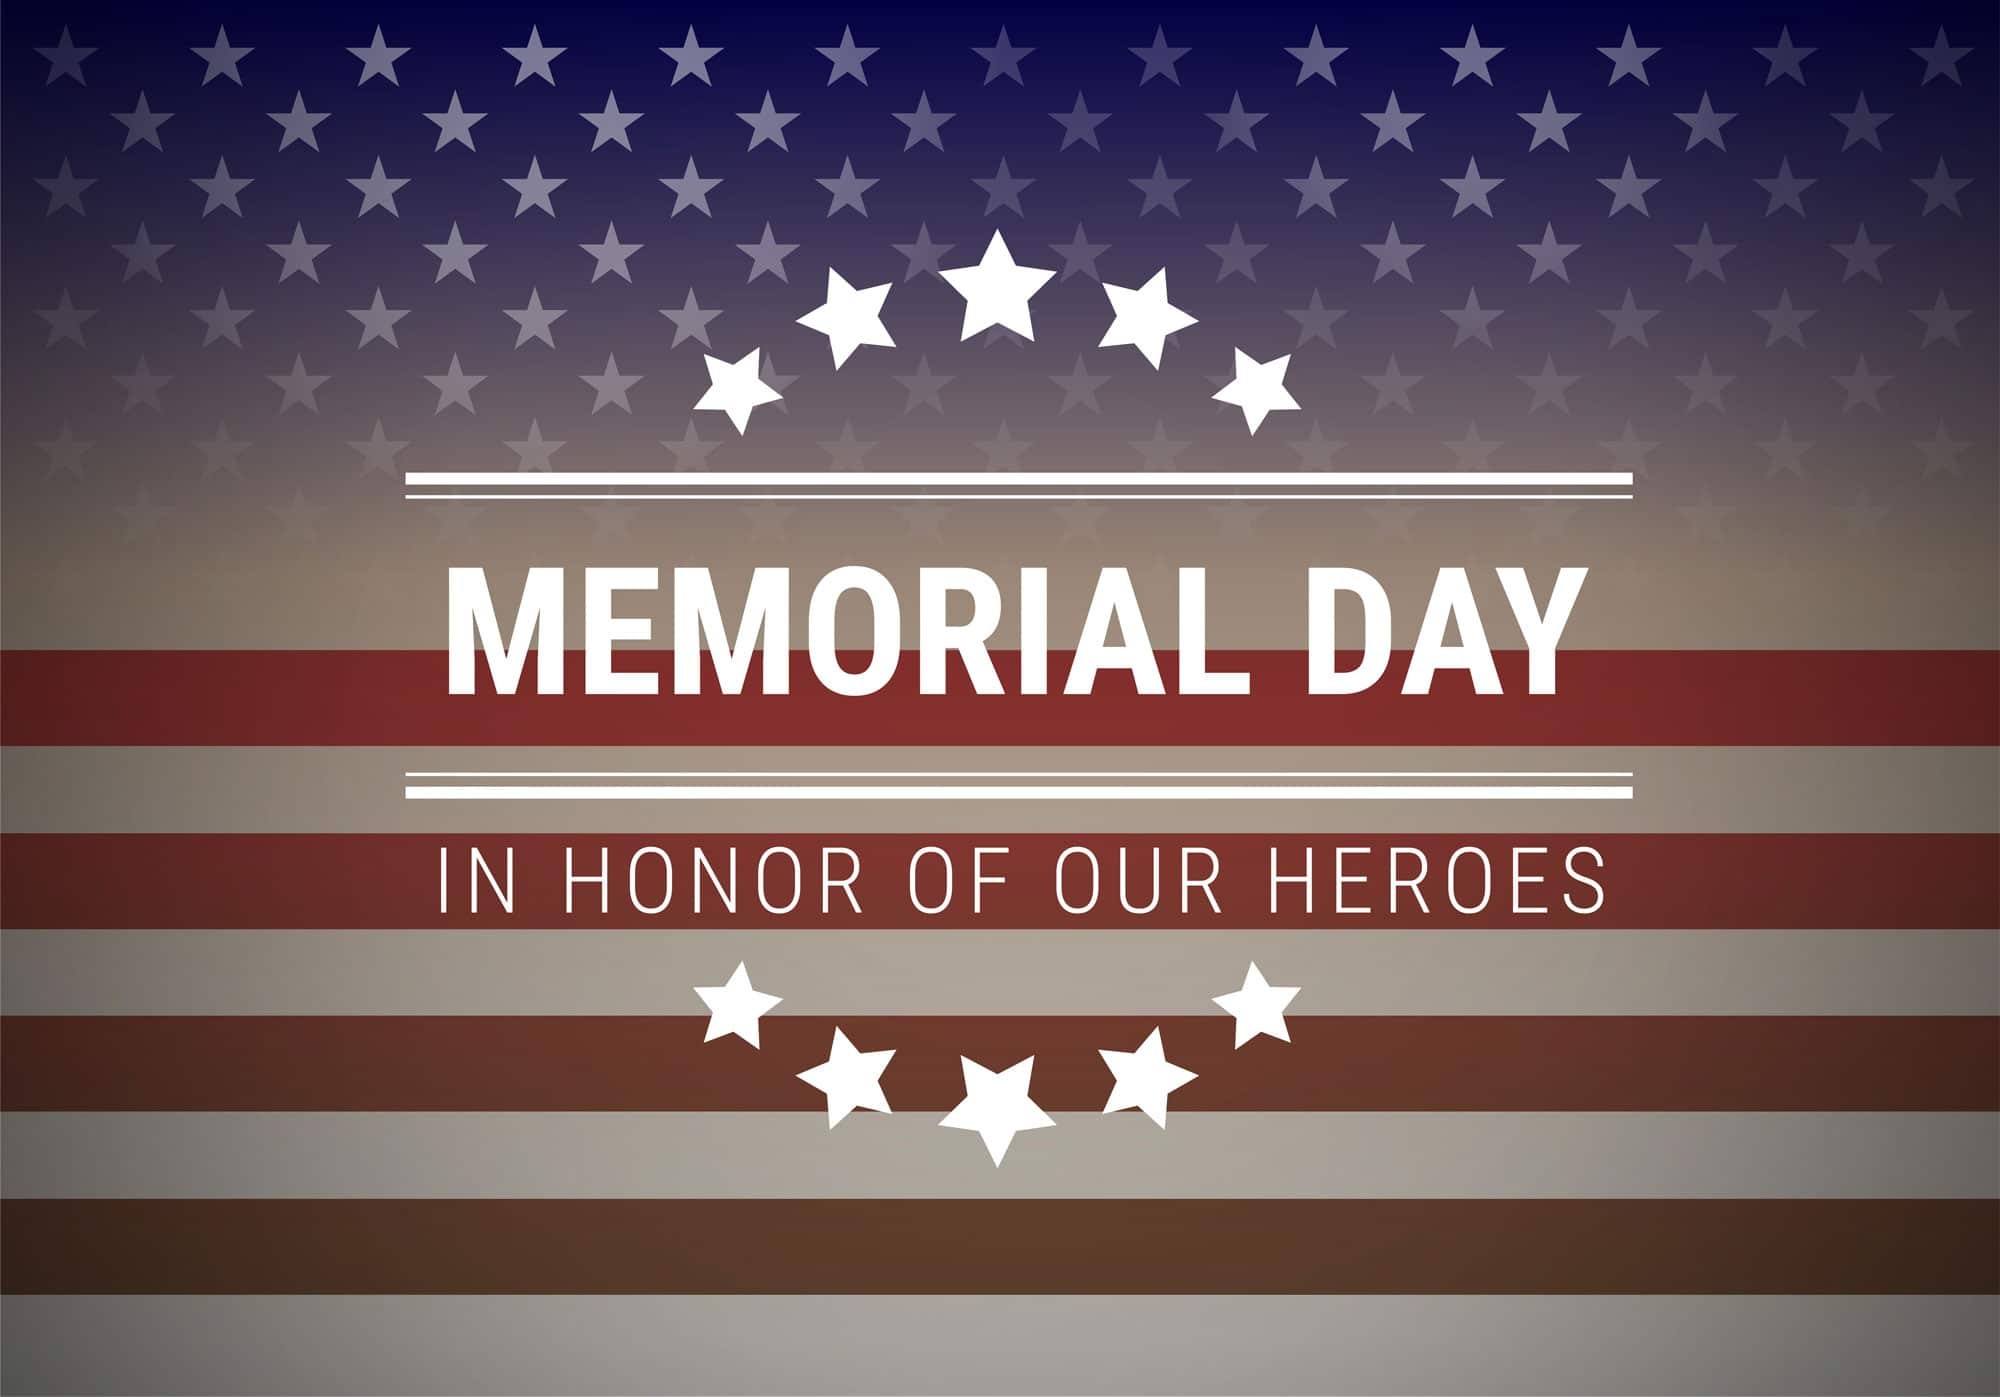 USA Flag Co. wishes you a safe and Happy Memorial Day! We honor the memory of service members and their families who sacrificed to protect our freedom. Thank you.